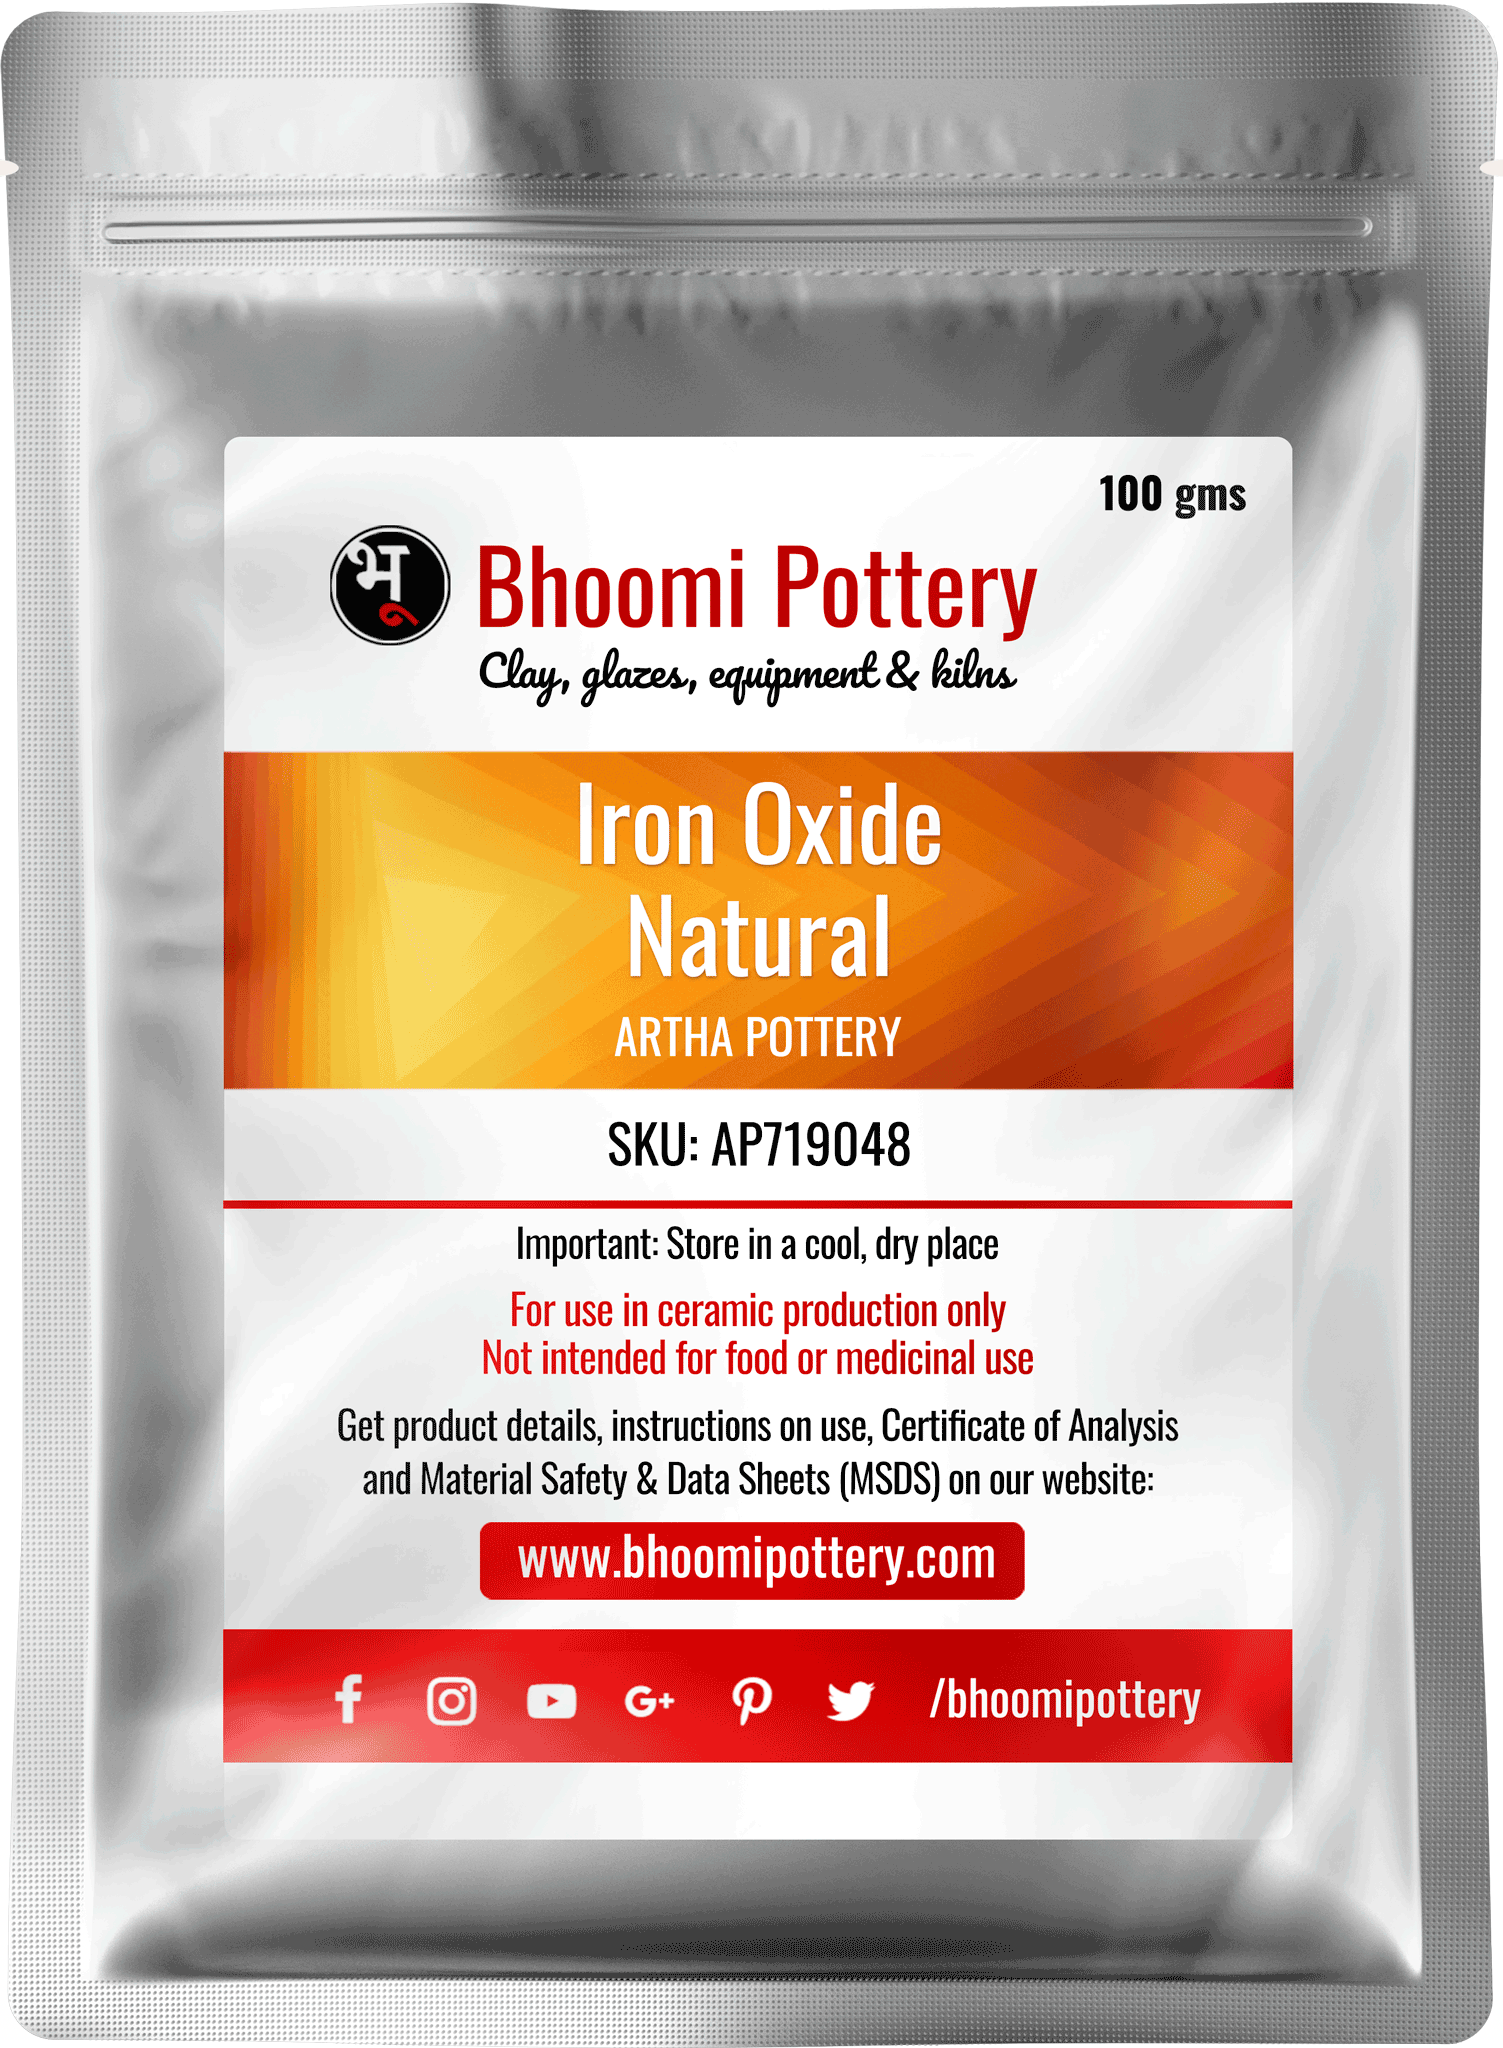 Artha Pottery Iron Oxide Natural 100 gms for sale in India - Bhoomi Pottery